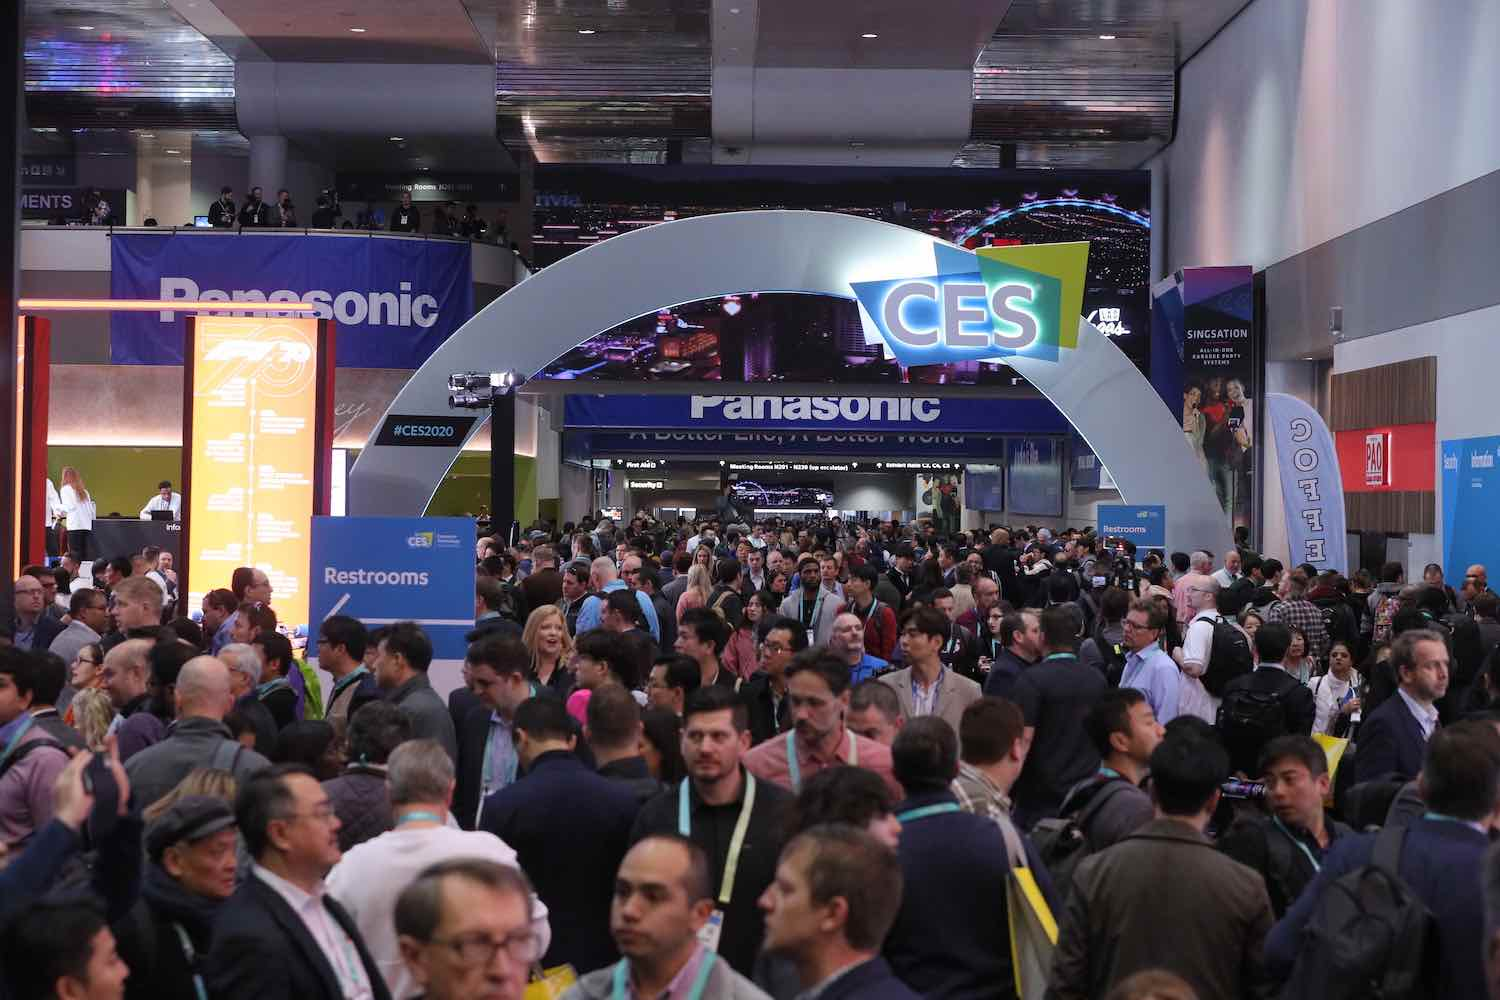 CES 2020, show opening arch - courtesy of CES.